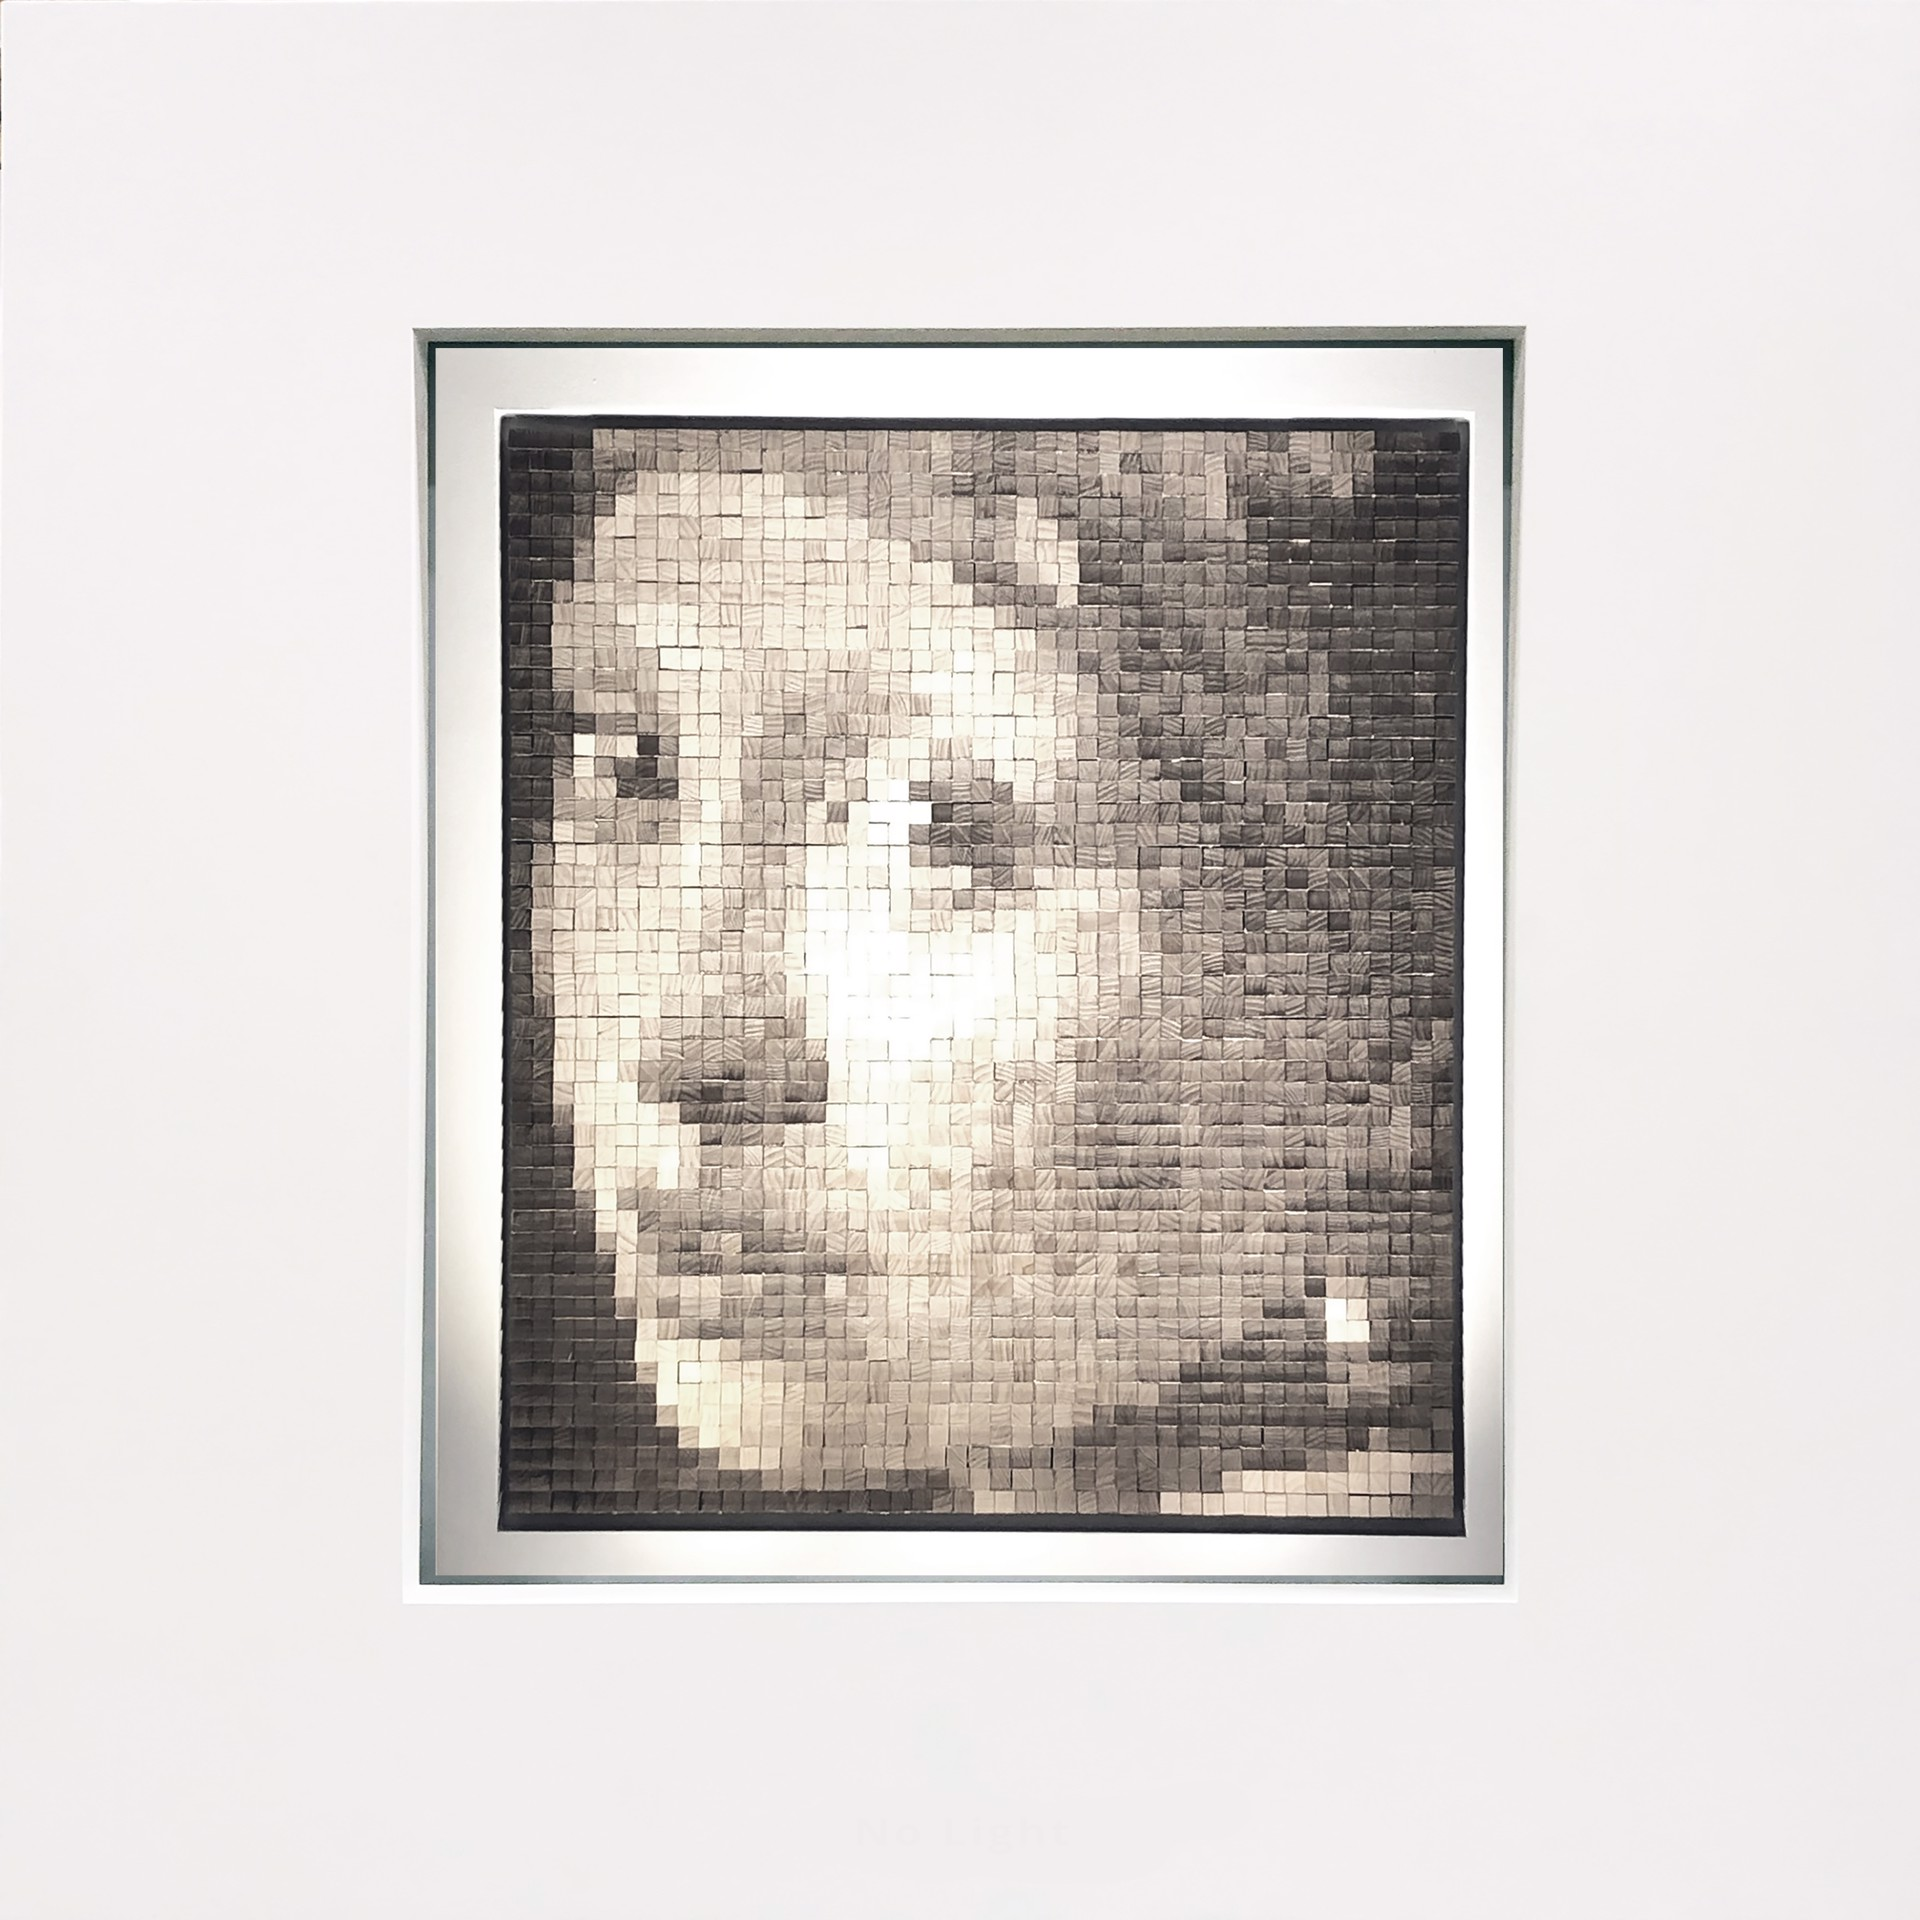 Girl With the Pearl Earring by J.P. Goncalves, Pixel